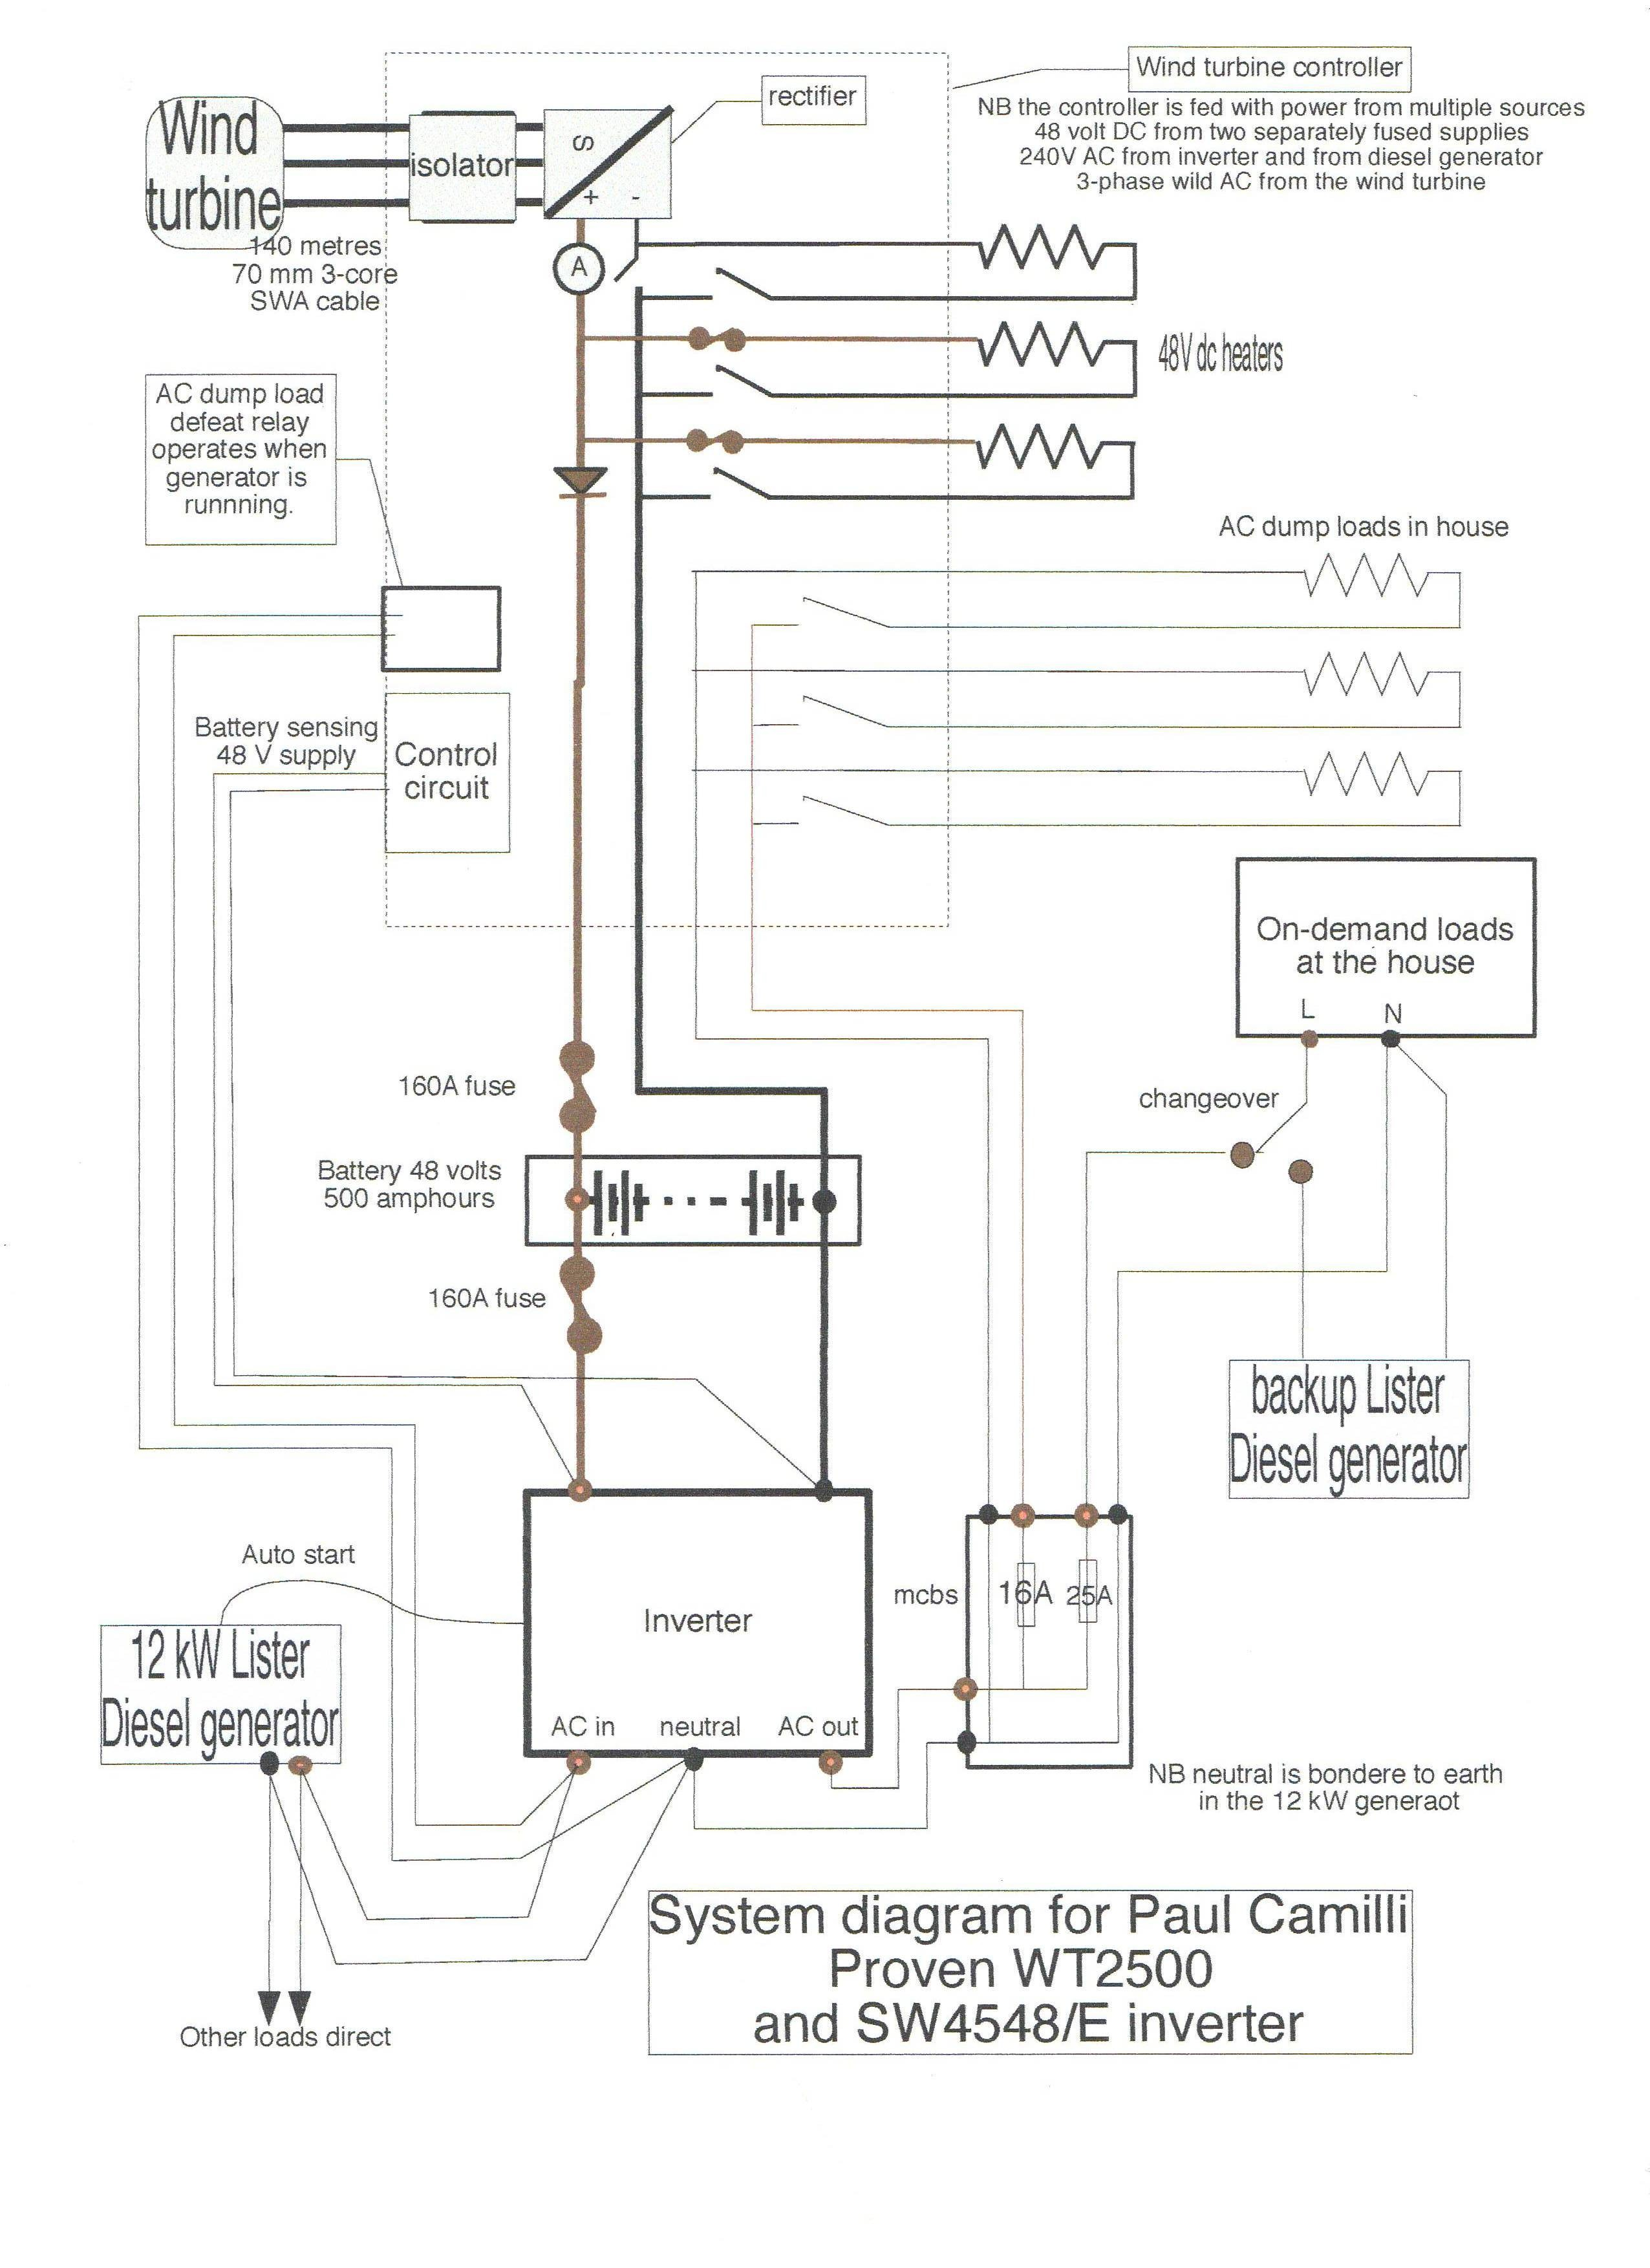 Generator Rectifier Wiring Diagram Cathodic Protection Gy6 Suzuki Phase Ac Diagramadvice For Wind Turbine And Solar On